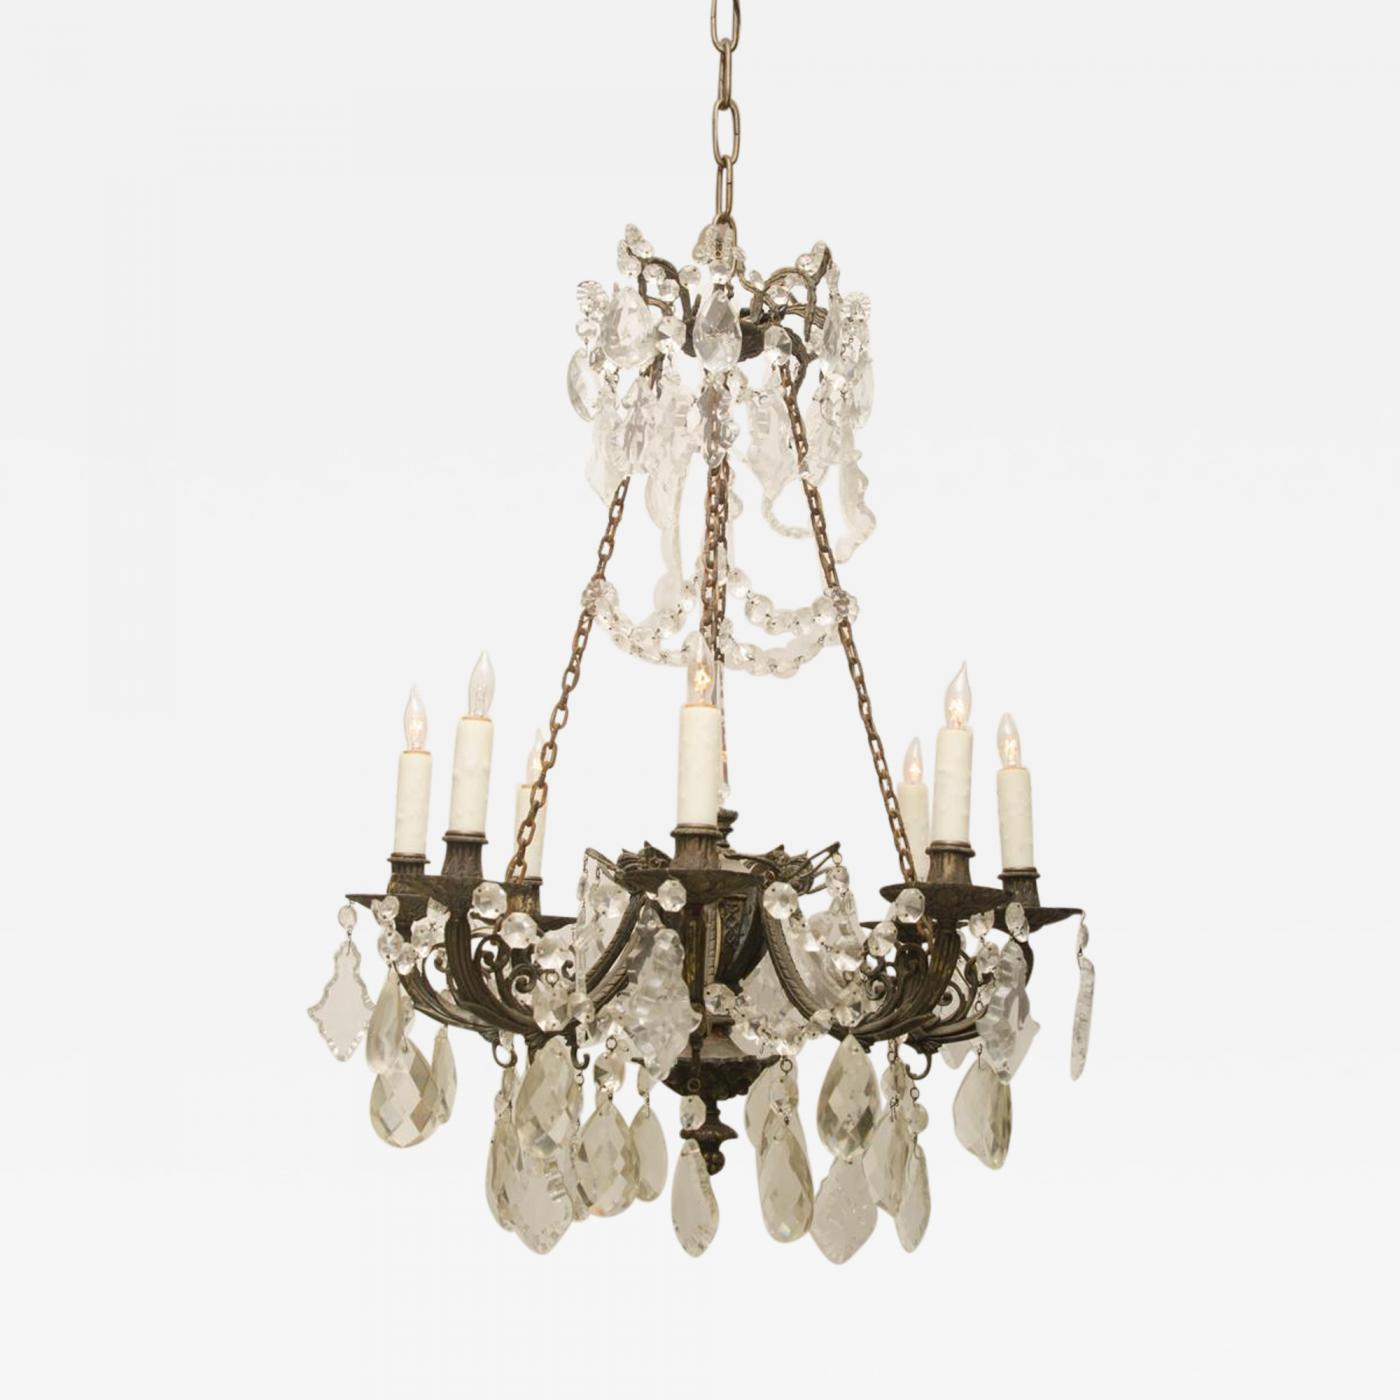 Iron and crystal converted gas light chandelier listings furniture lighting chandeliers and pendants iron and crystal converted gas light chandelier aloadofball Choice Image